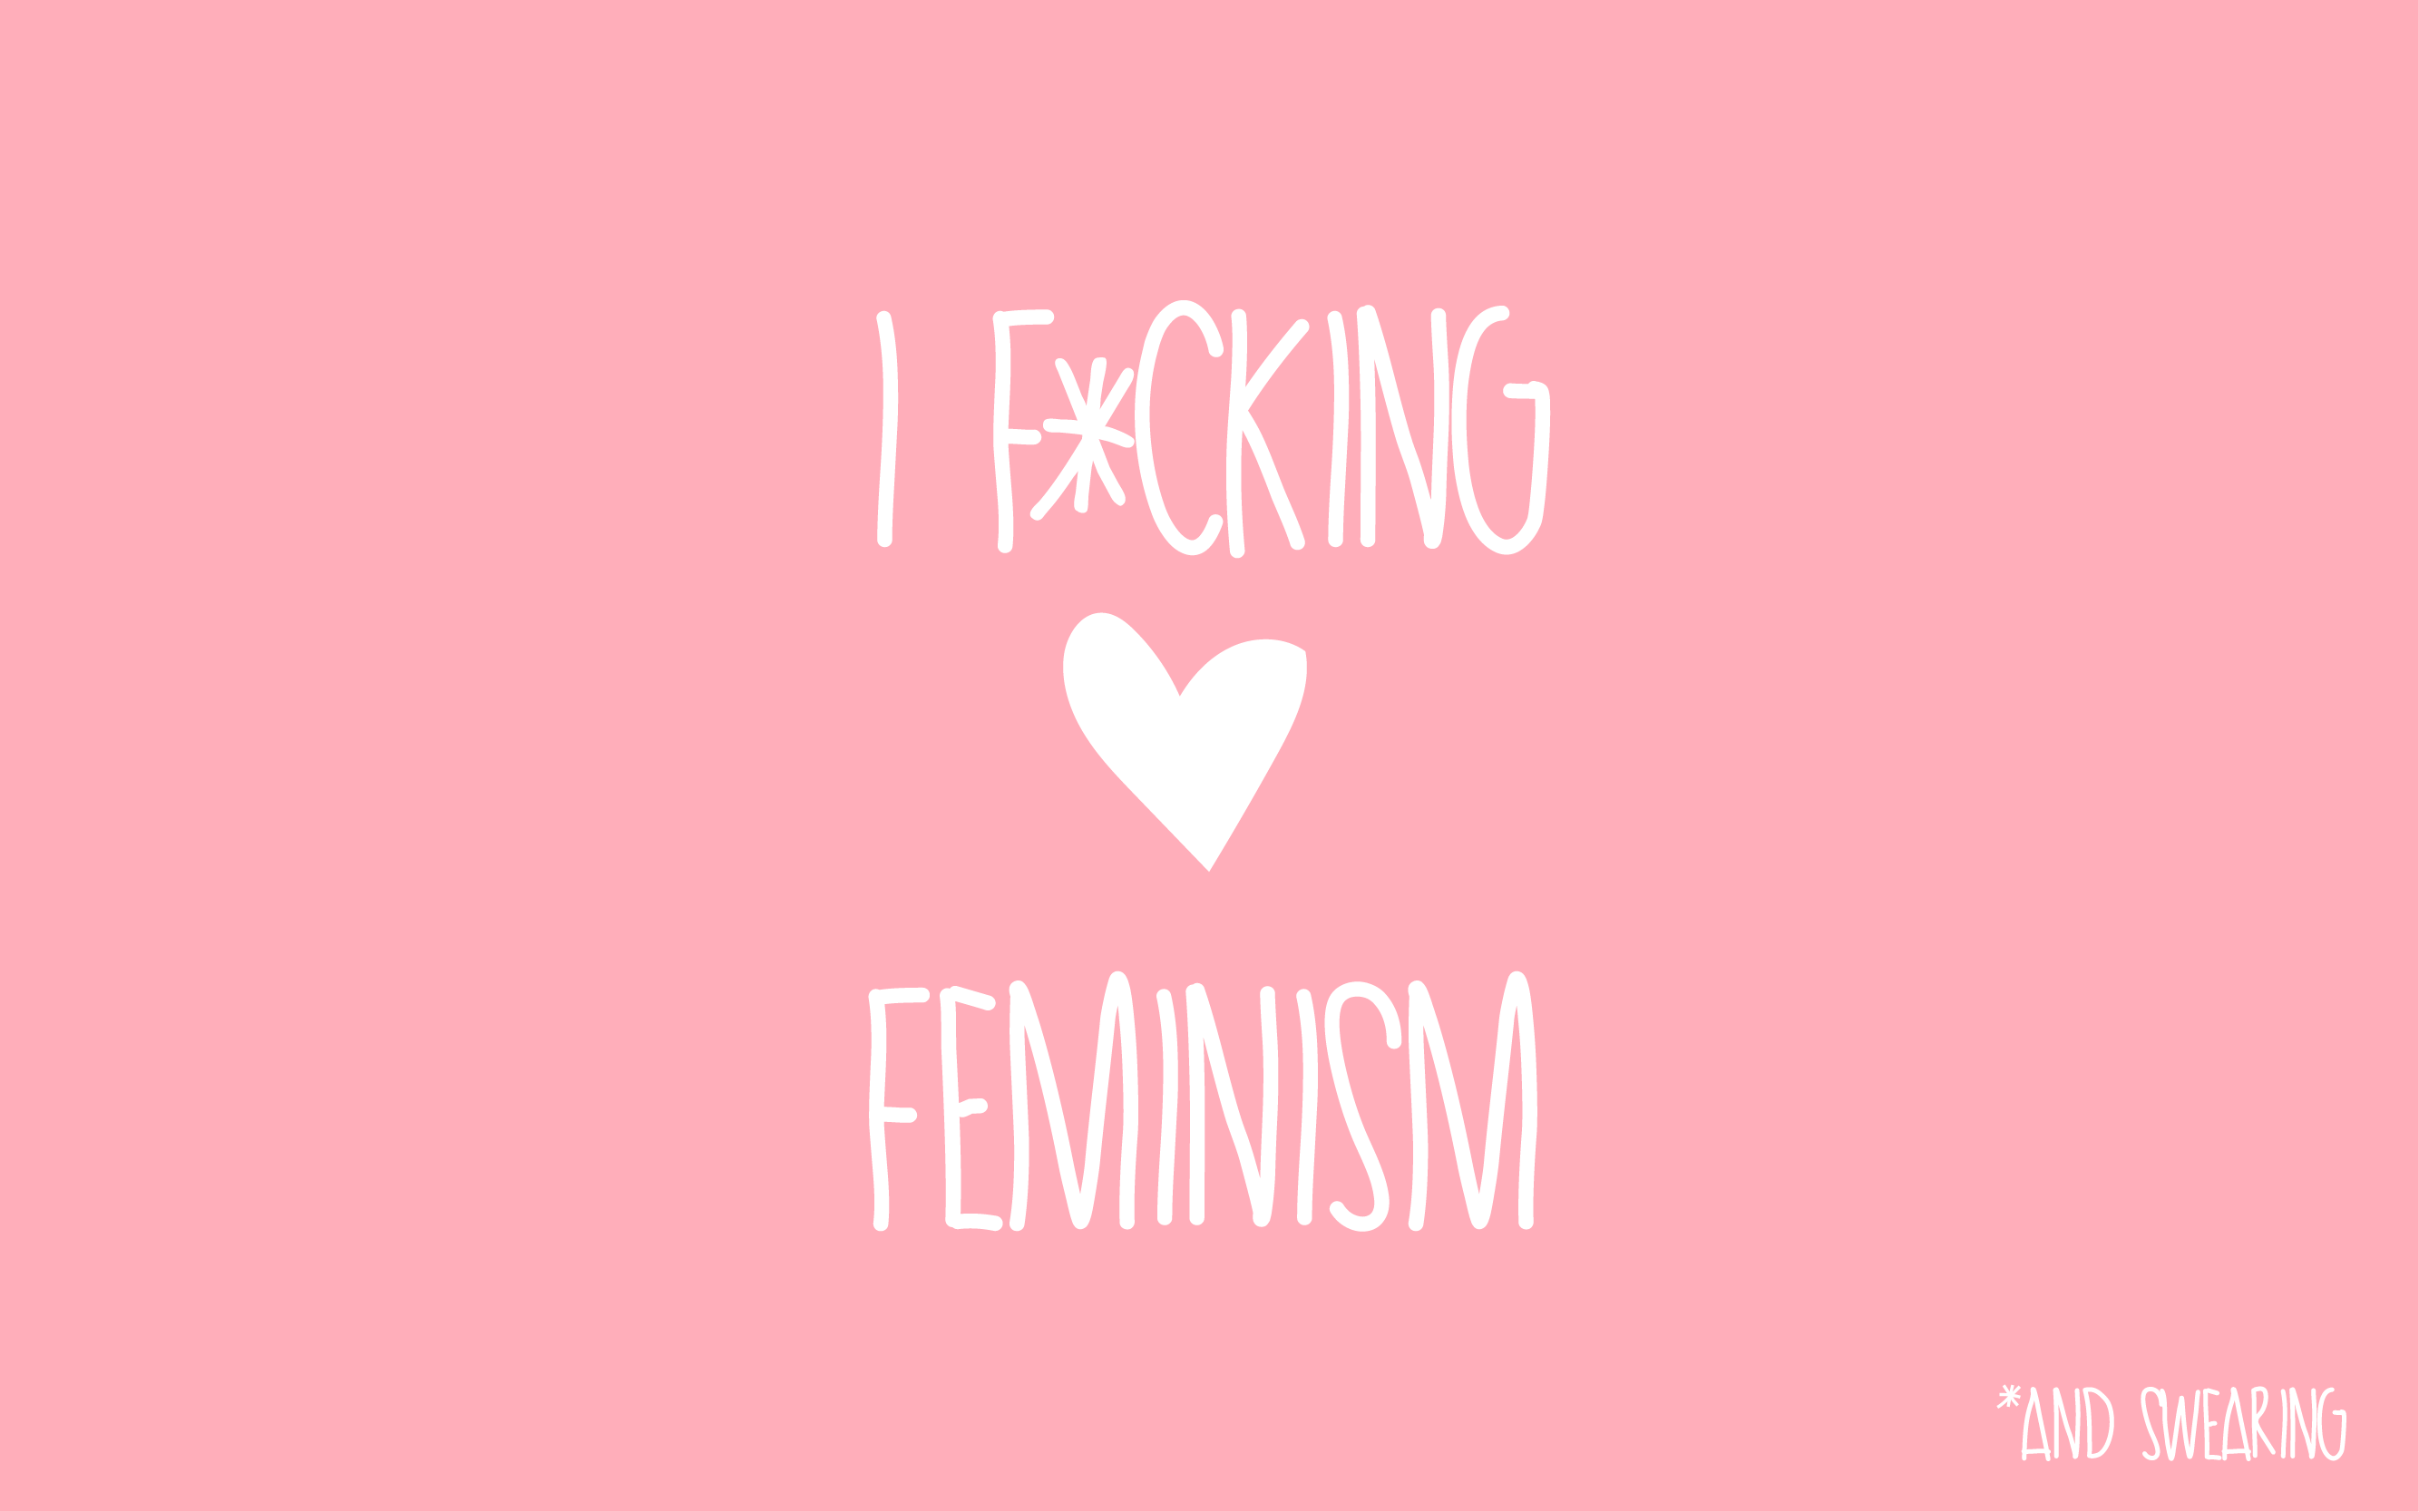 Top Collection of Feminist Wallpapers: 39632104 Feminist Background 2667x1667 px